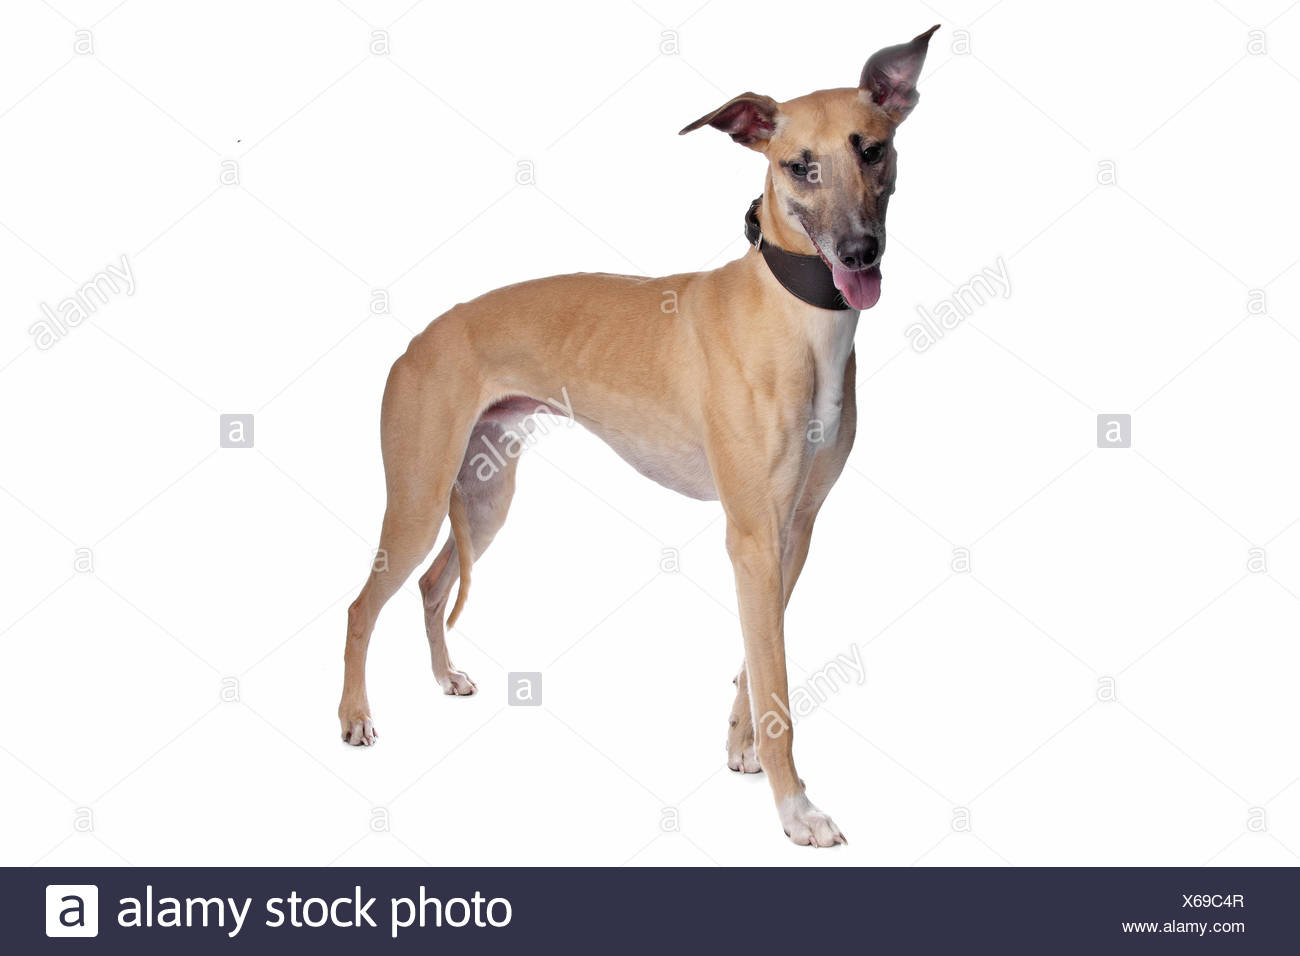 Greyhound, Whippet, Galgo dog - Stock Image